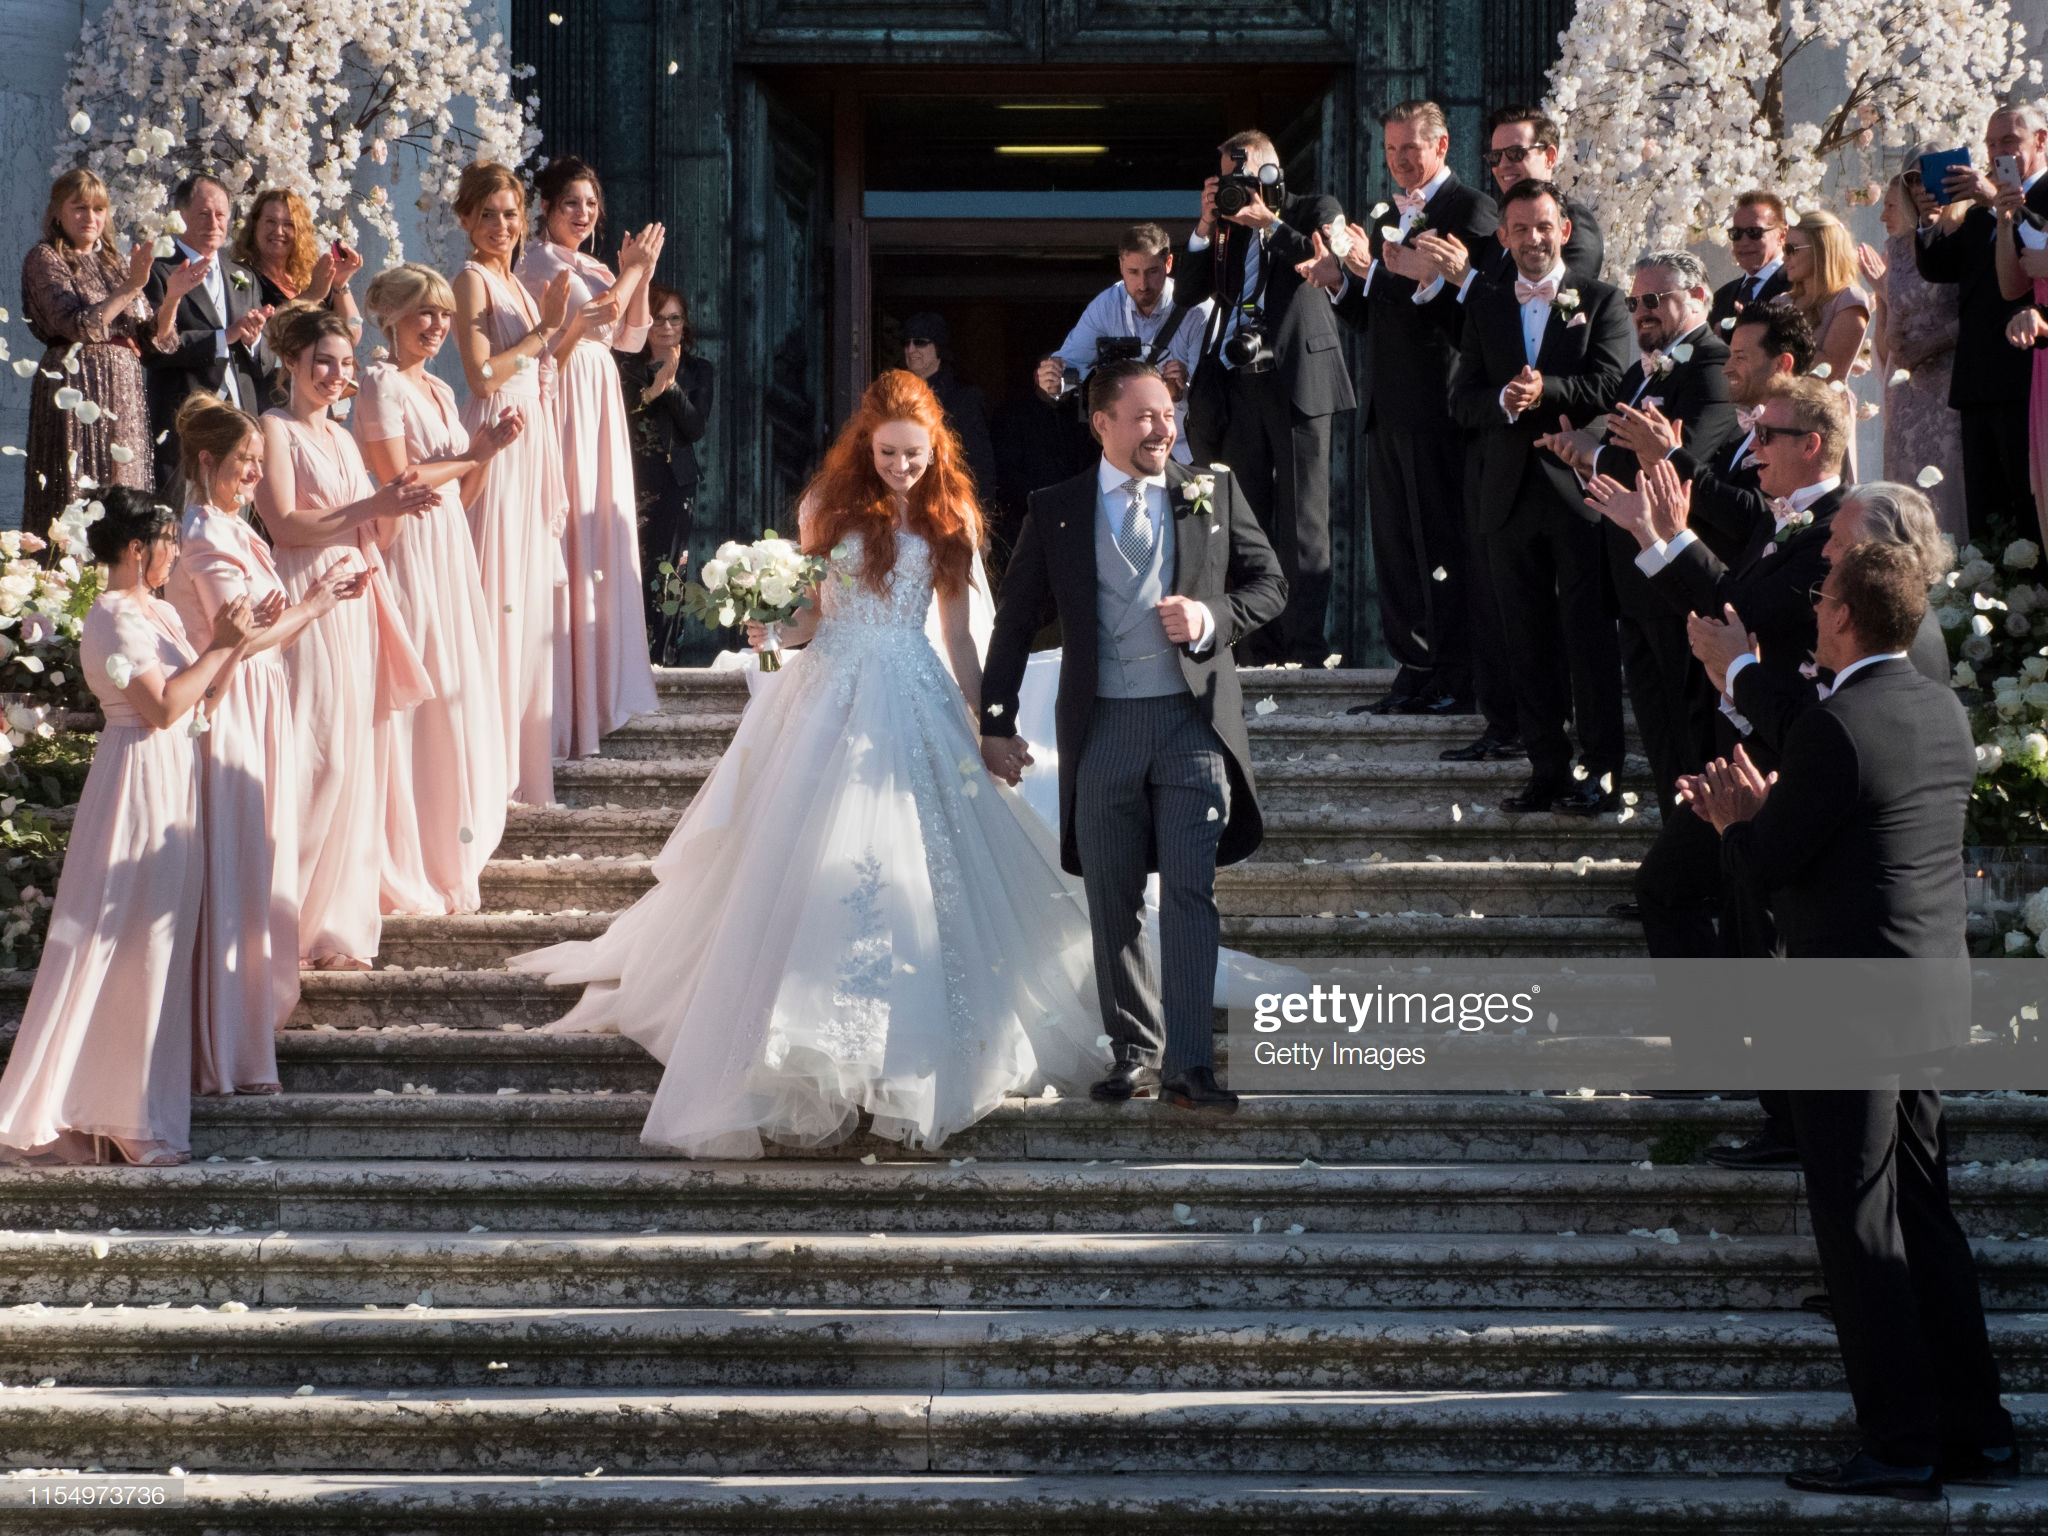 gettyimages-1154973736-2048x2048.jpg